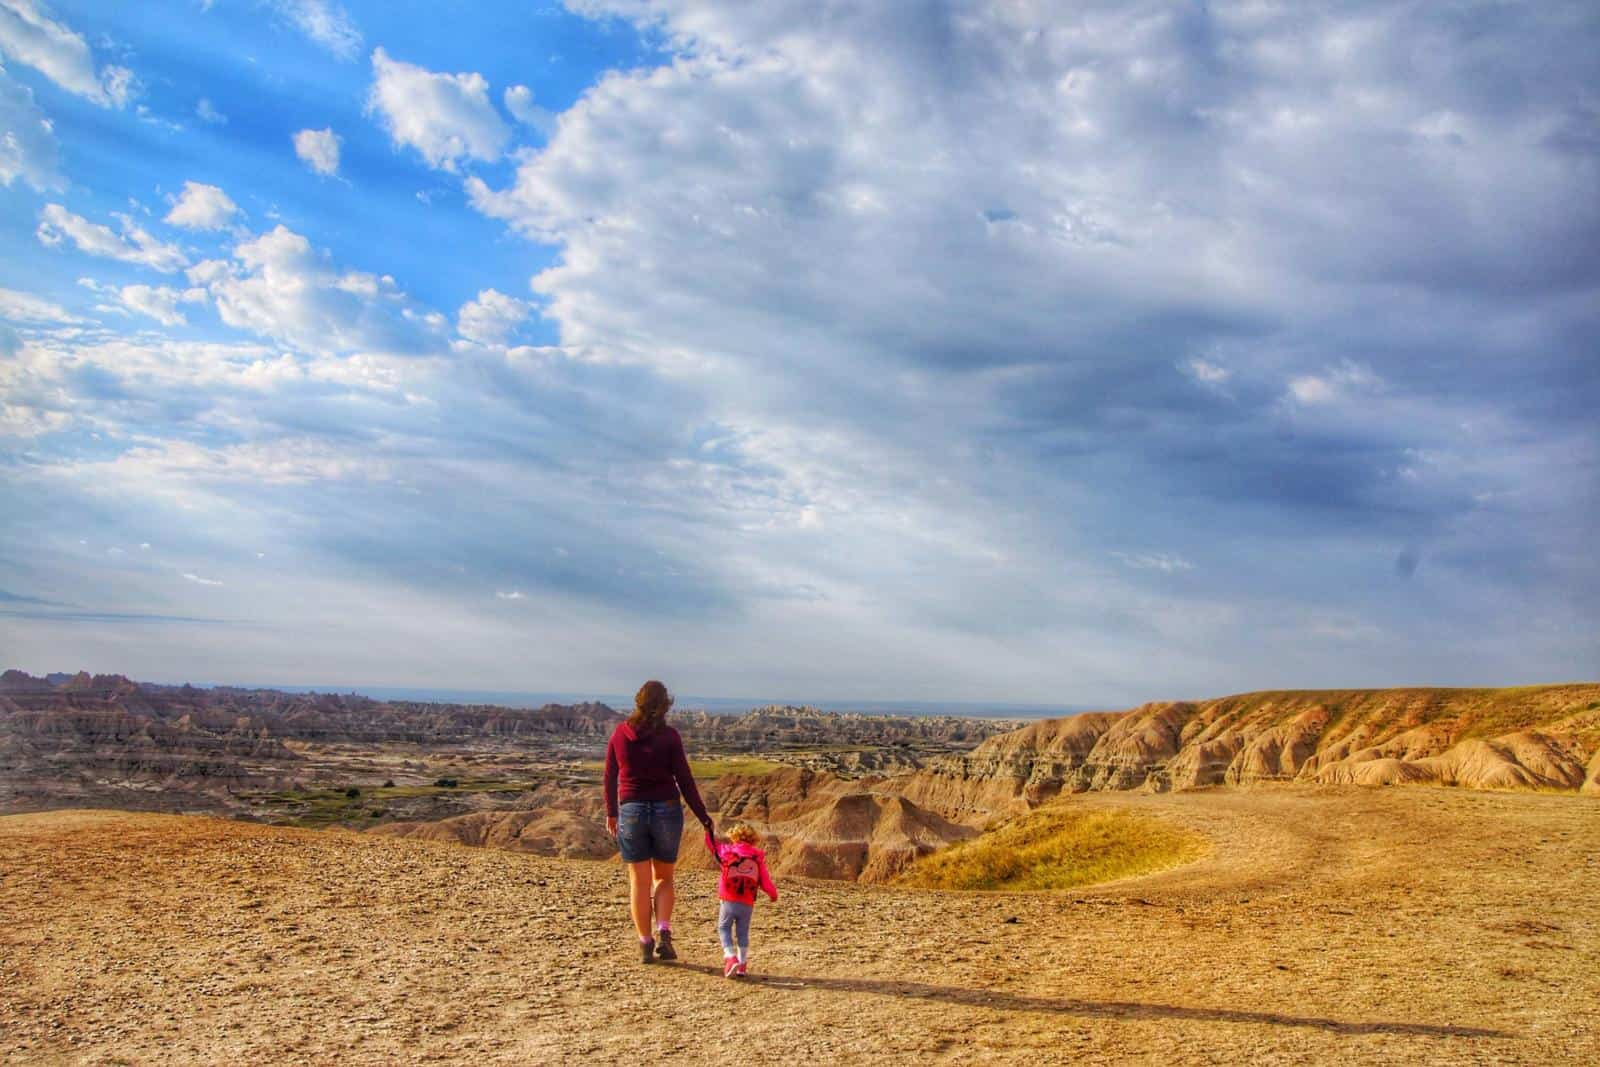 Our South Dakota Road Trip featured the Badlands on Day 1